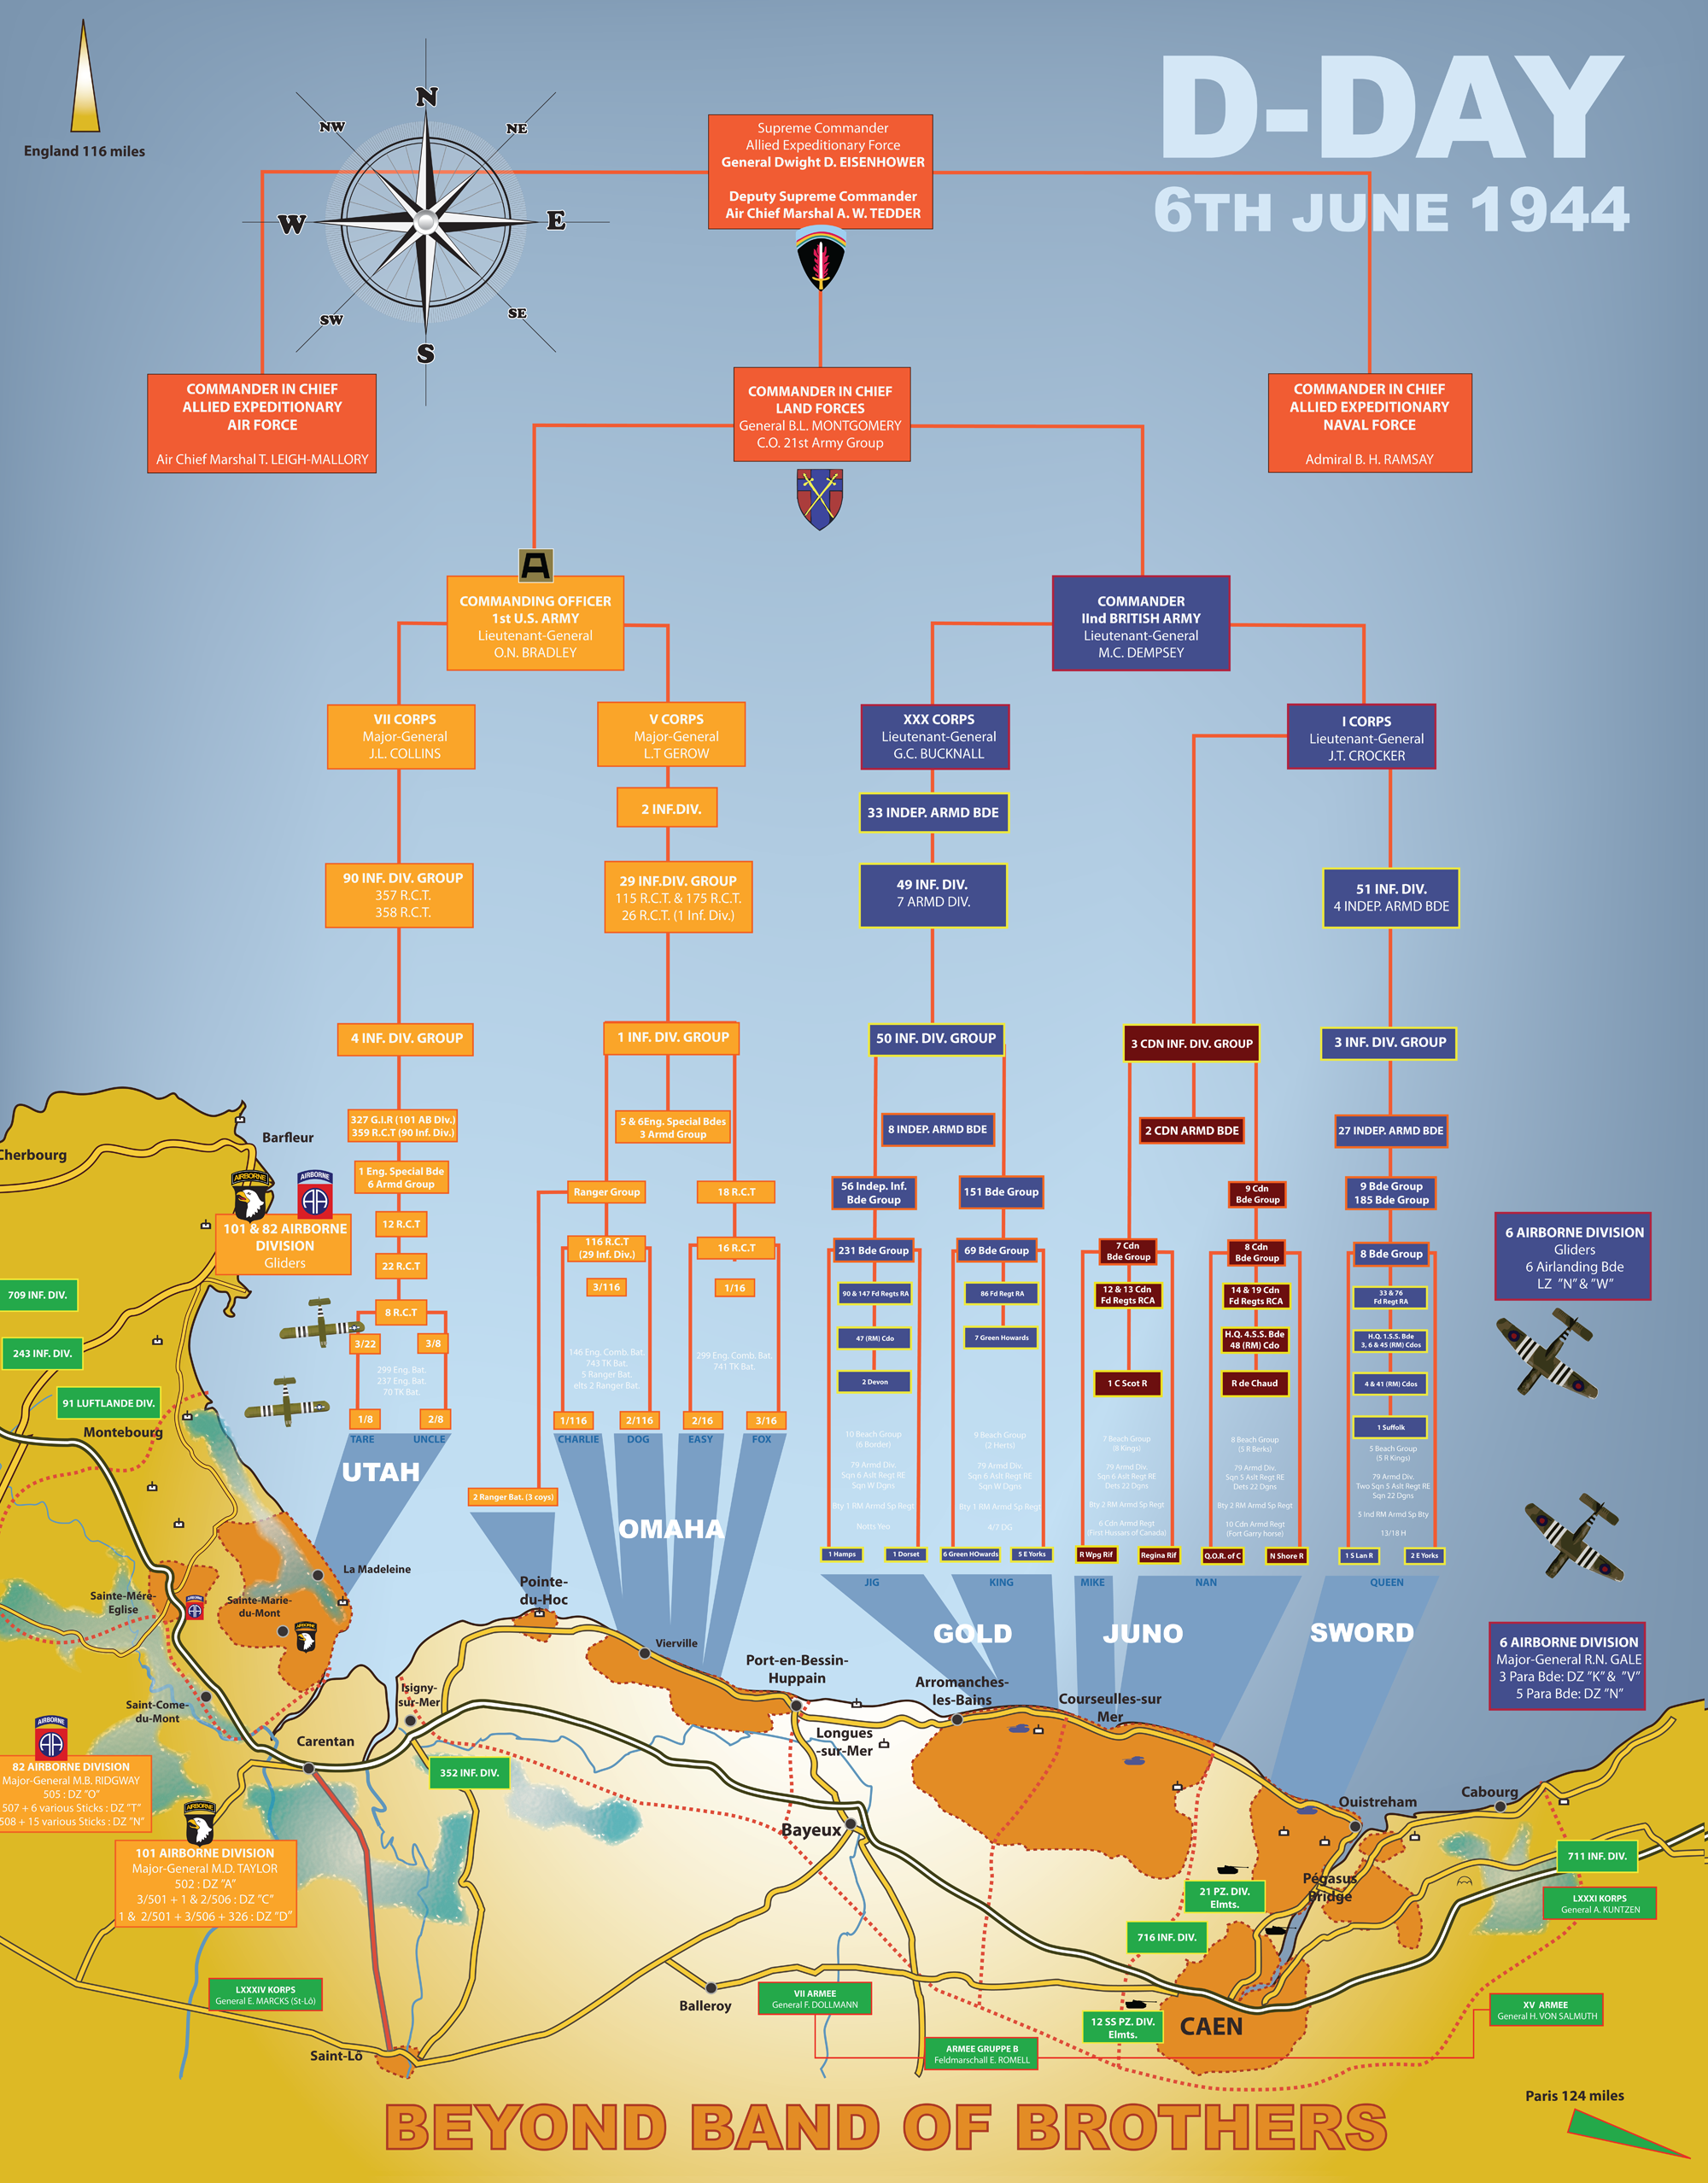 A detailed map of what countries landed on which beach and ... on democracy map, d-day landings map, nazi map, hitler map, d-day animated map, normandy map, france map, d day weather map, boat map, oklahoma d-day map, action map, dayz map, eisenhower map, d-day europe map, juno beach map, falaise gap map, d-day interactive map, d-day beach map, minecraft d-day map,